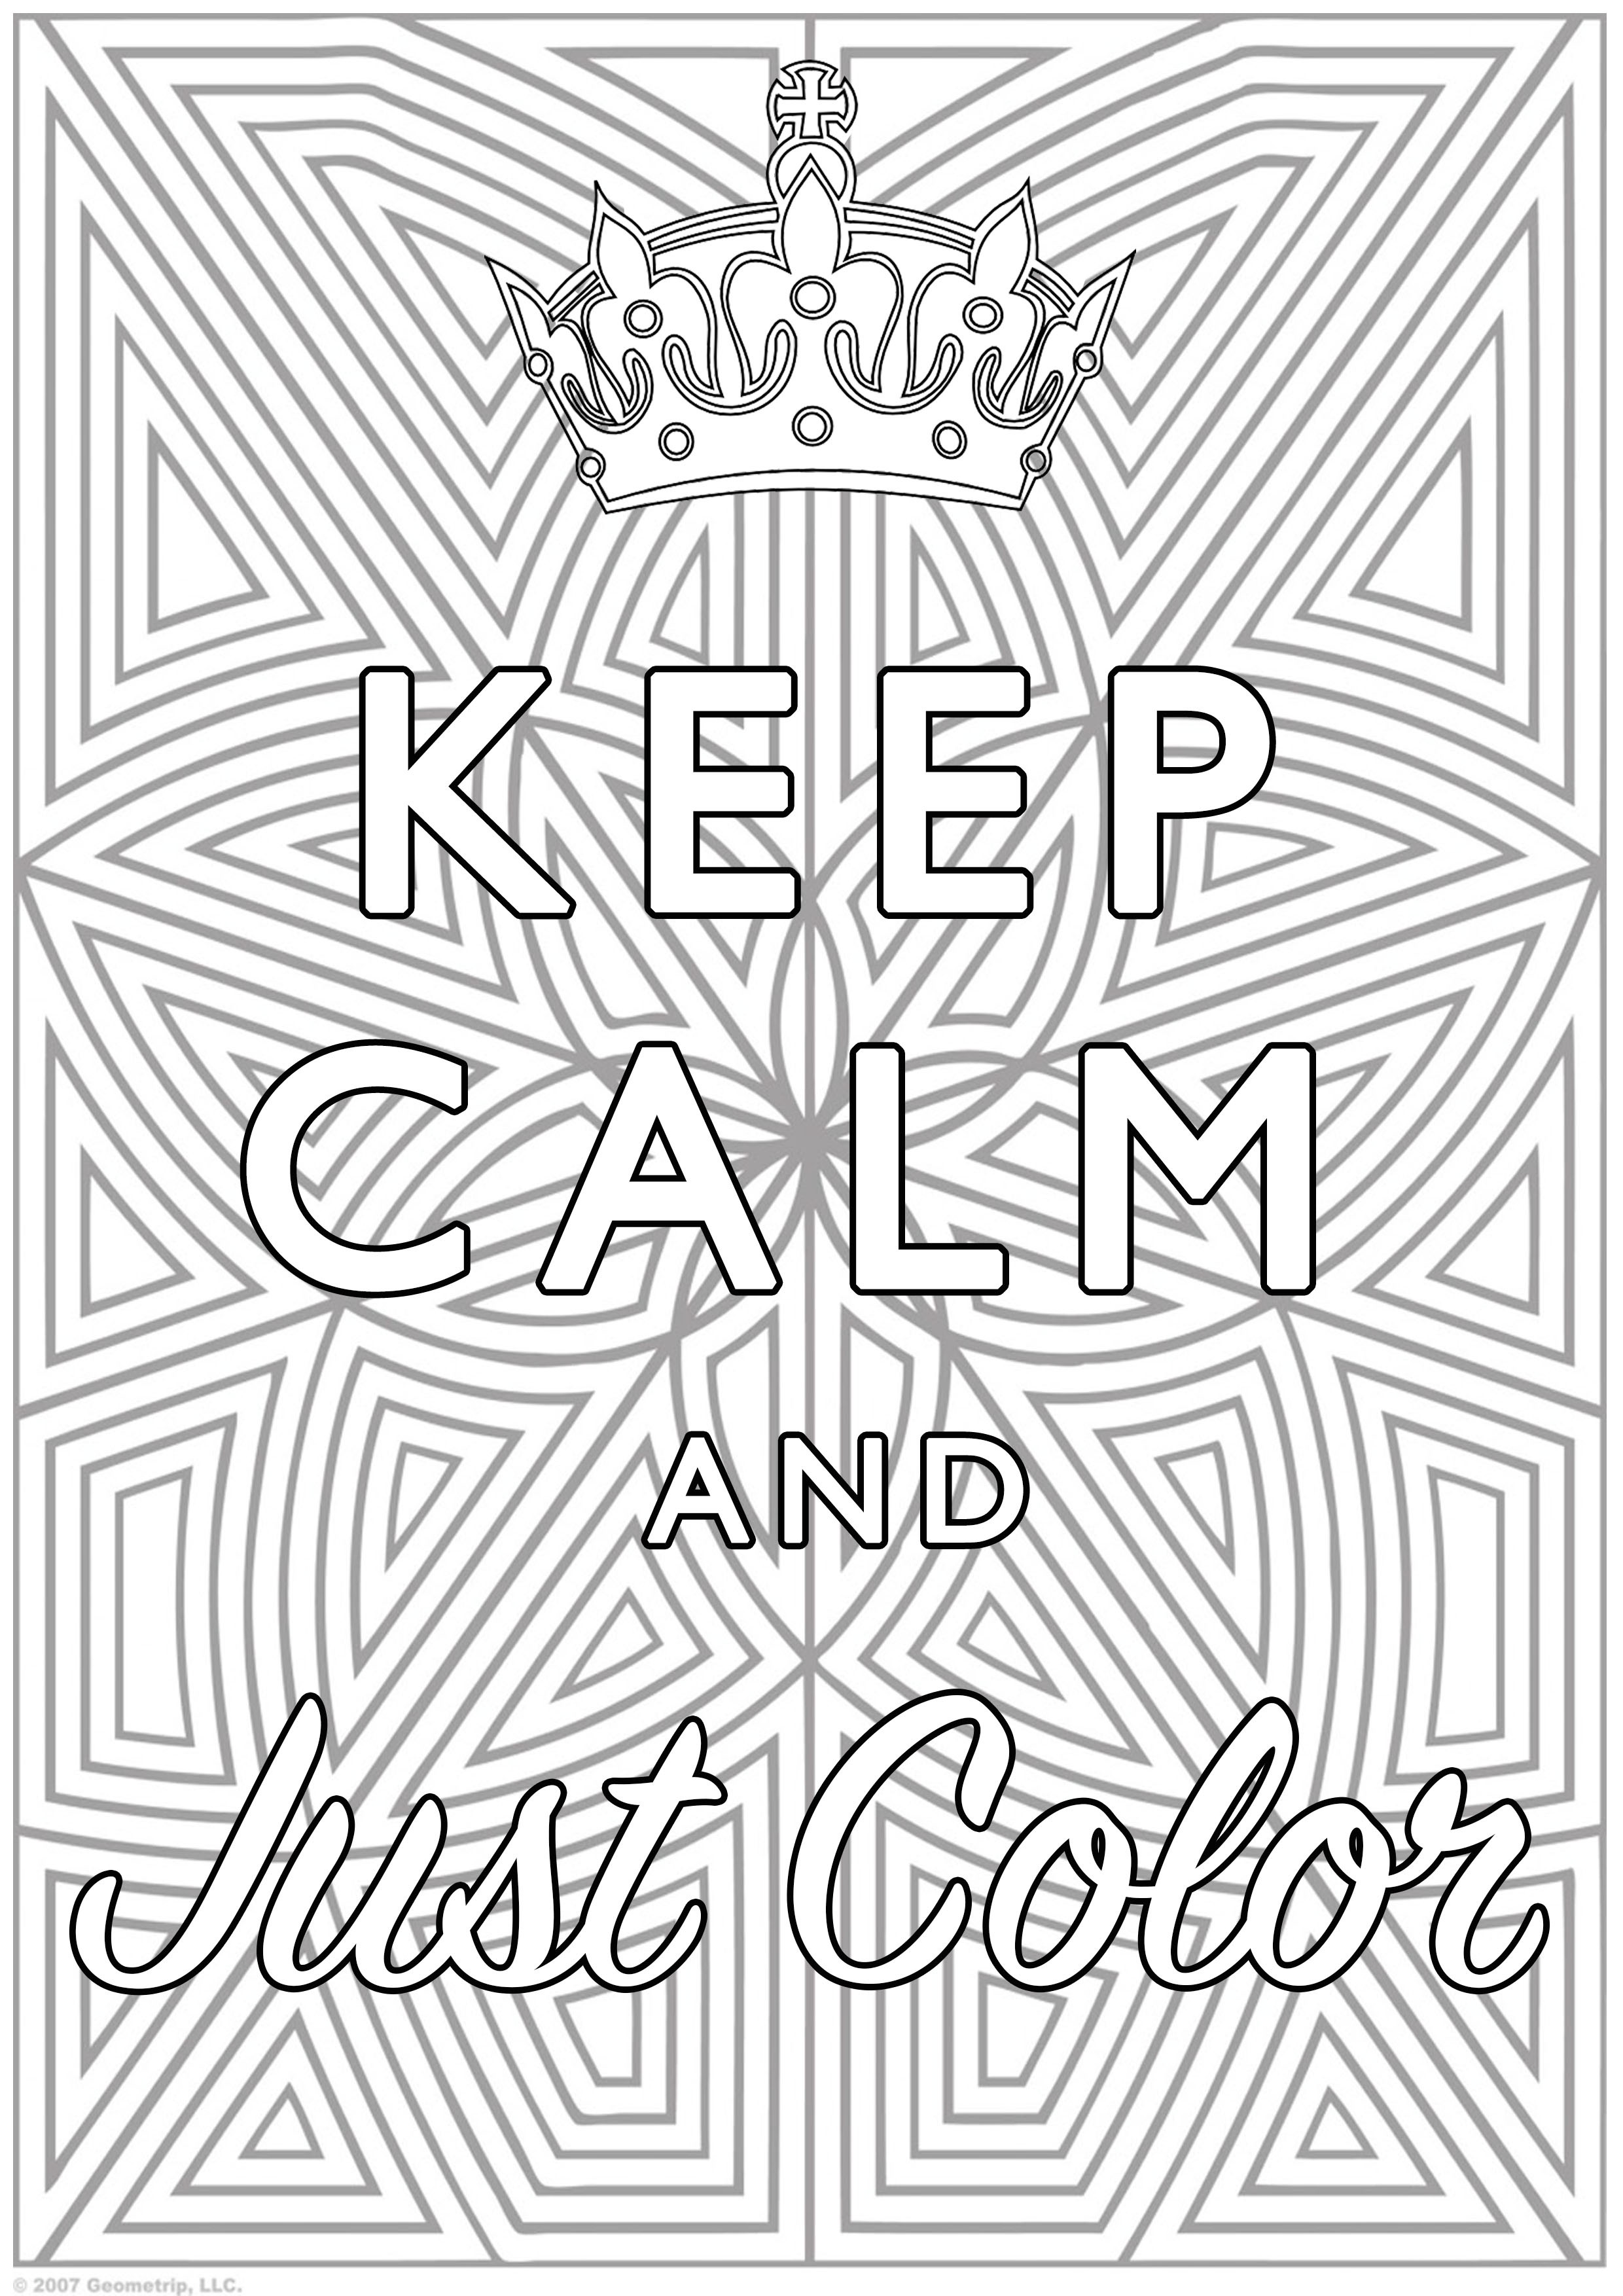 Best ideas about Calming Coloring Sheets For Kids . Save or Pin Keep Calm and Color Keep calm & … Adult Coloring Pages Now.